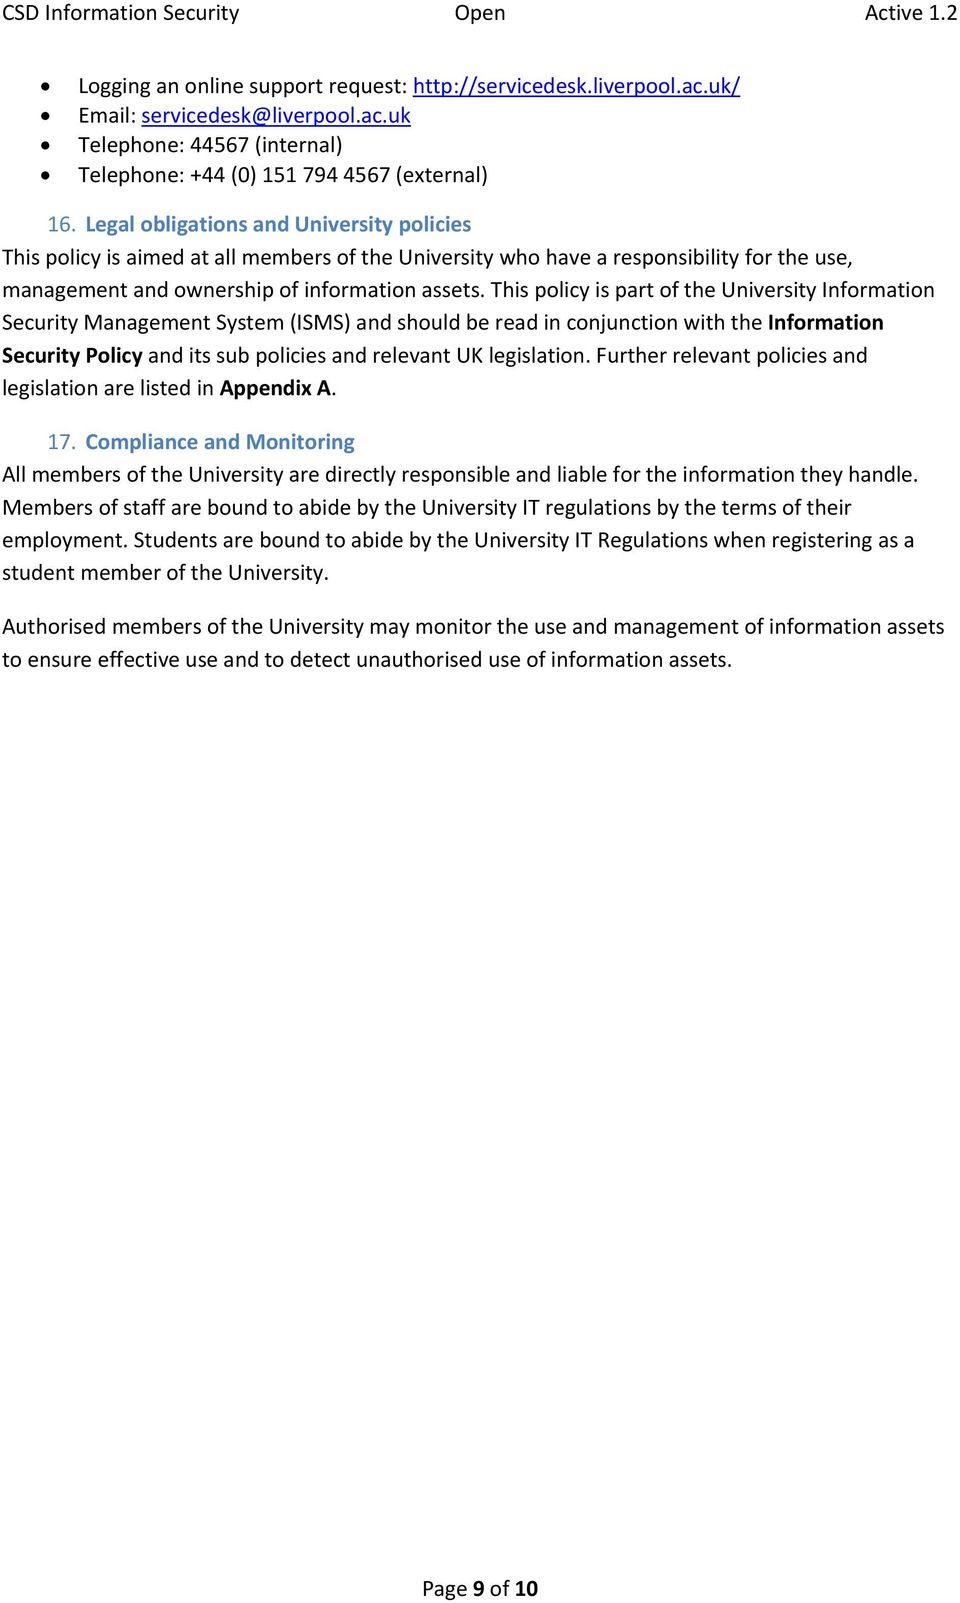 This policy is part of the University Information Security Management System (ISMS) and should be read in conjunction with the Information Security Policy and its sub policies and relevant UK